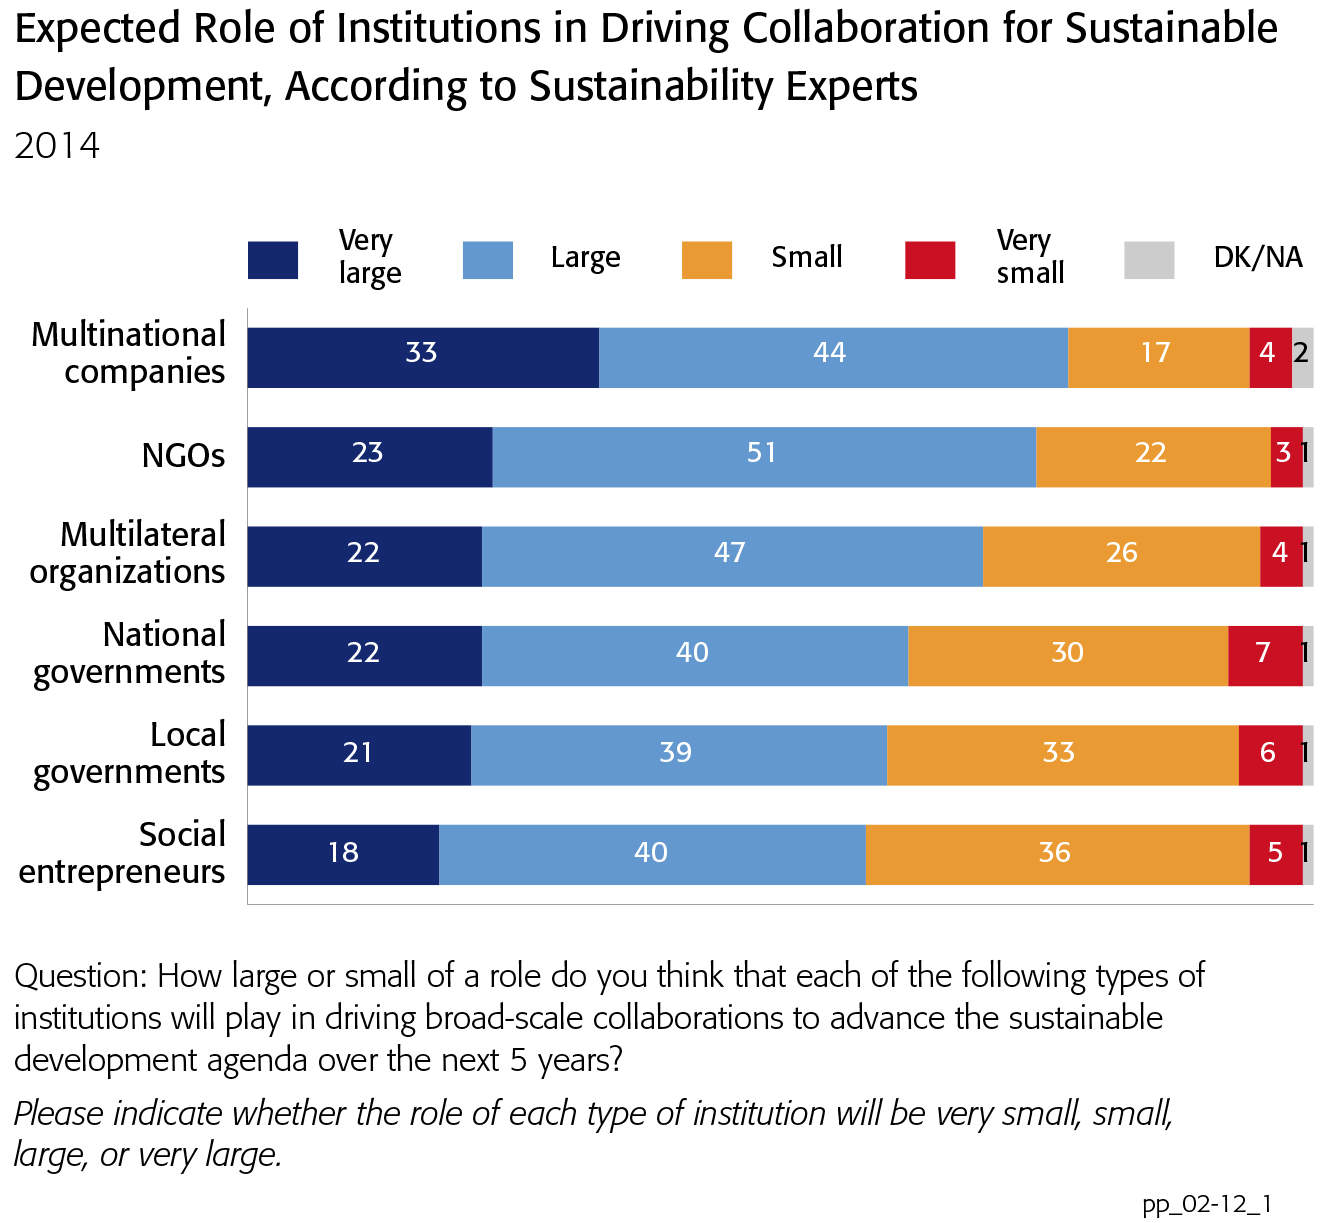 GlobeScan/Sustainability infographic on expected role of institutions in driving collaboration for sustainable development, according to sustainability experts